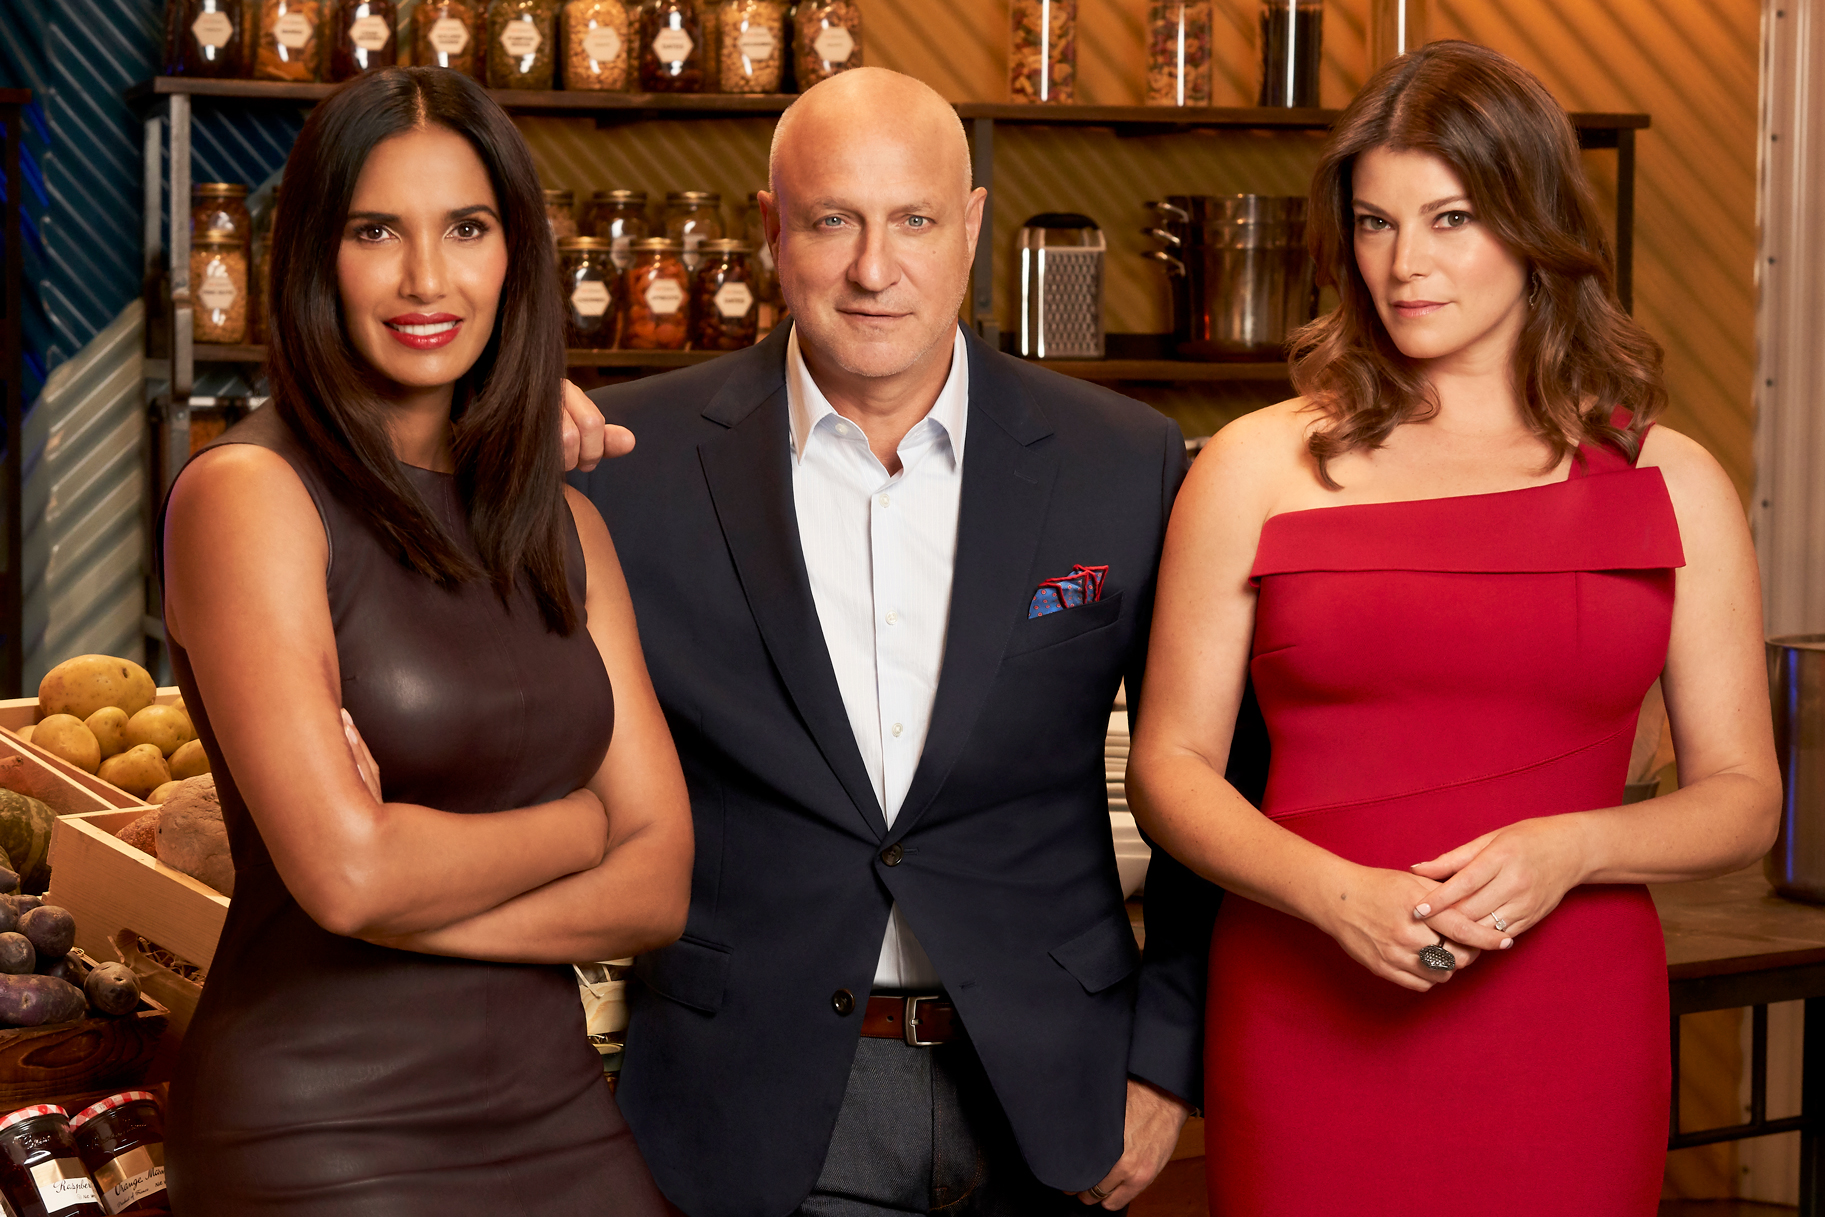 Top Chef Season 17 Cast